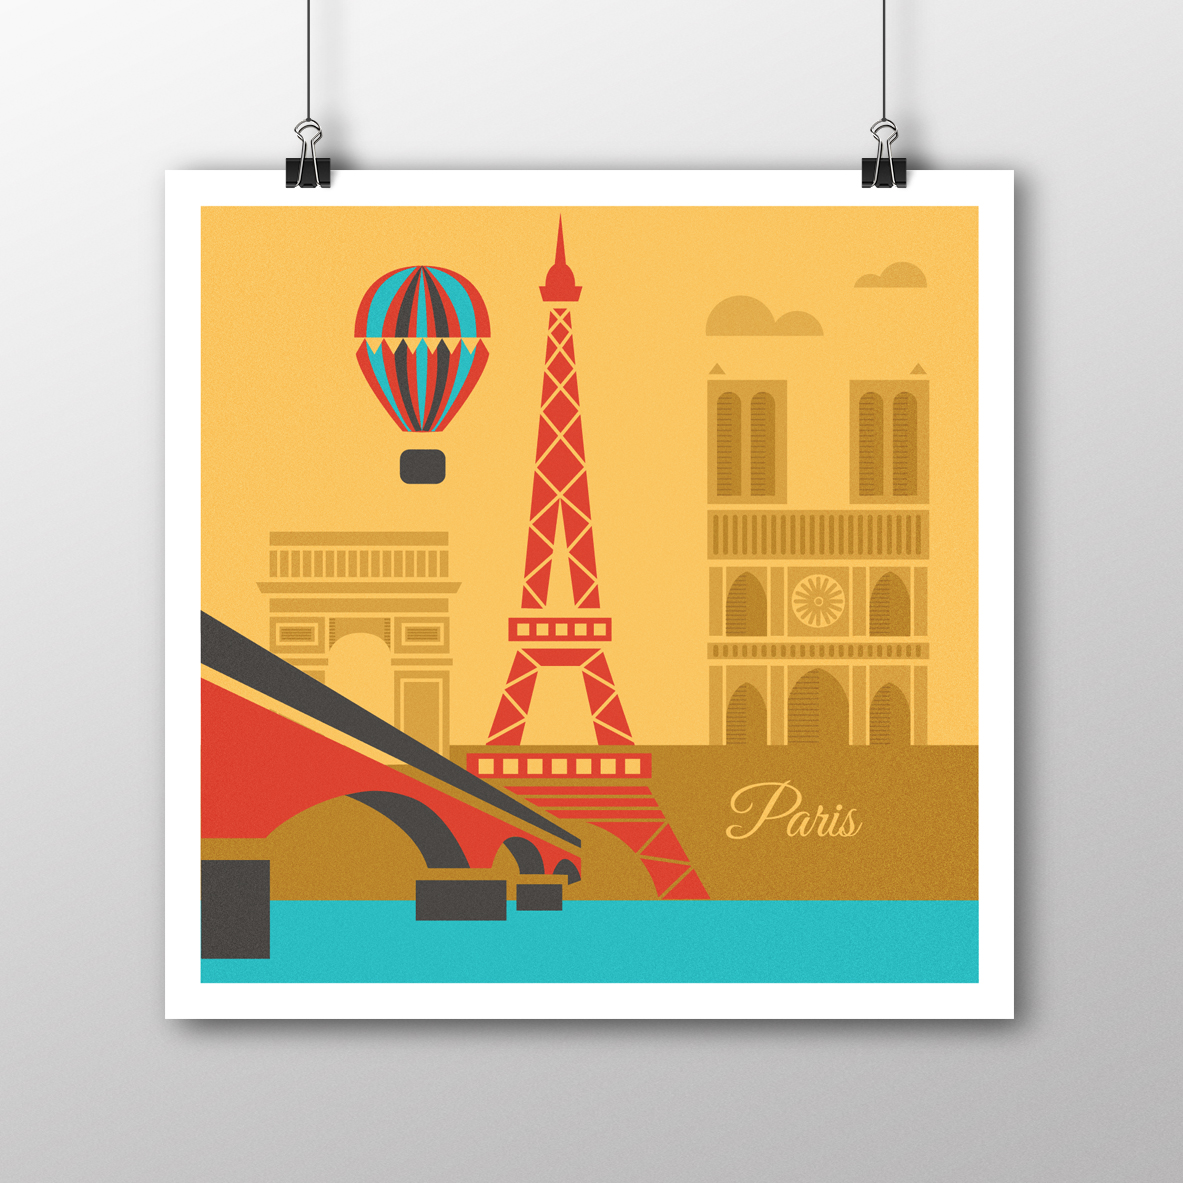 Paris illustrated poster